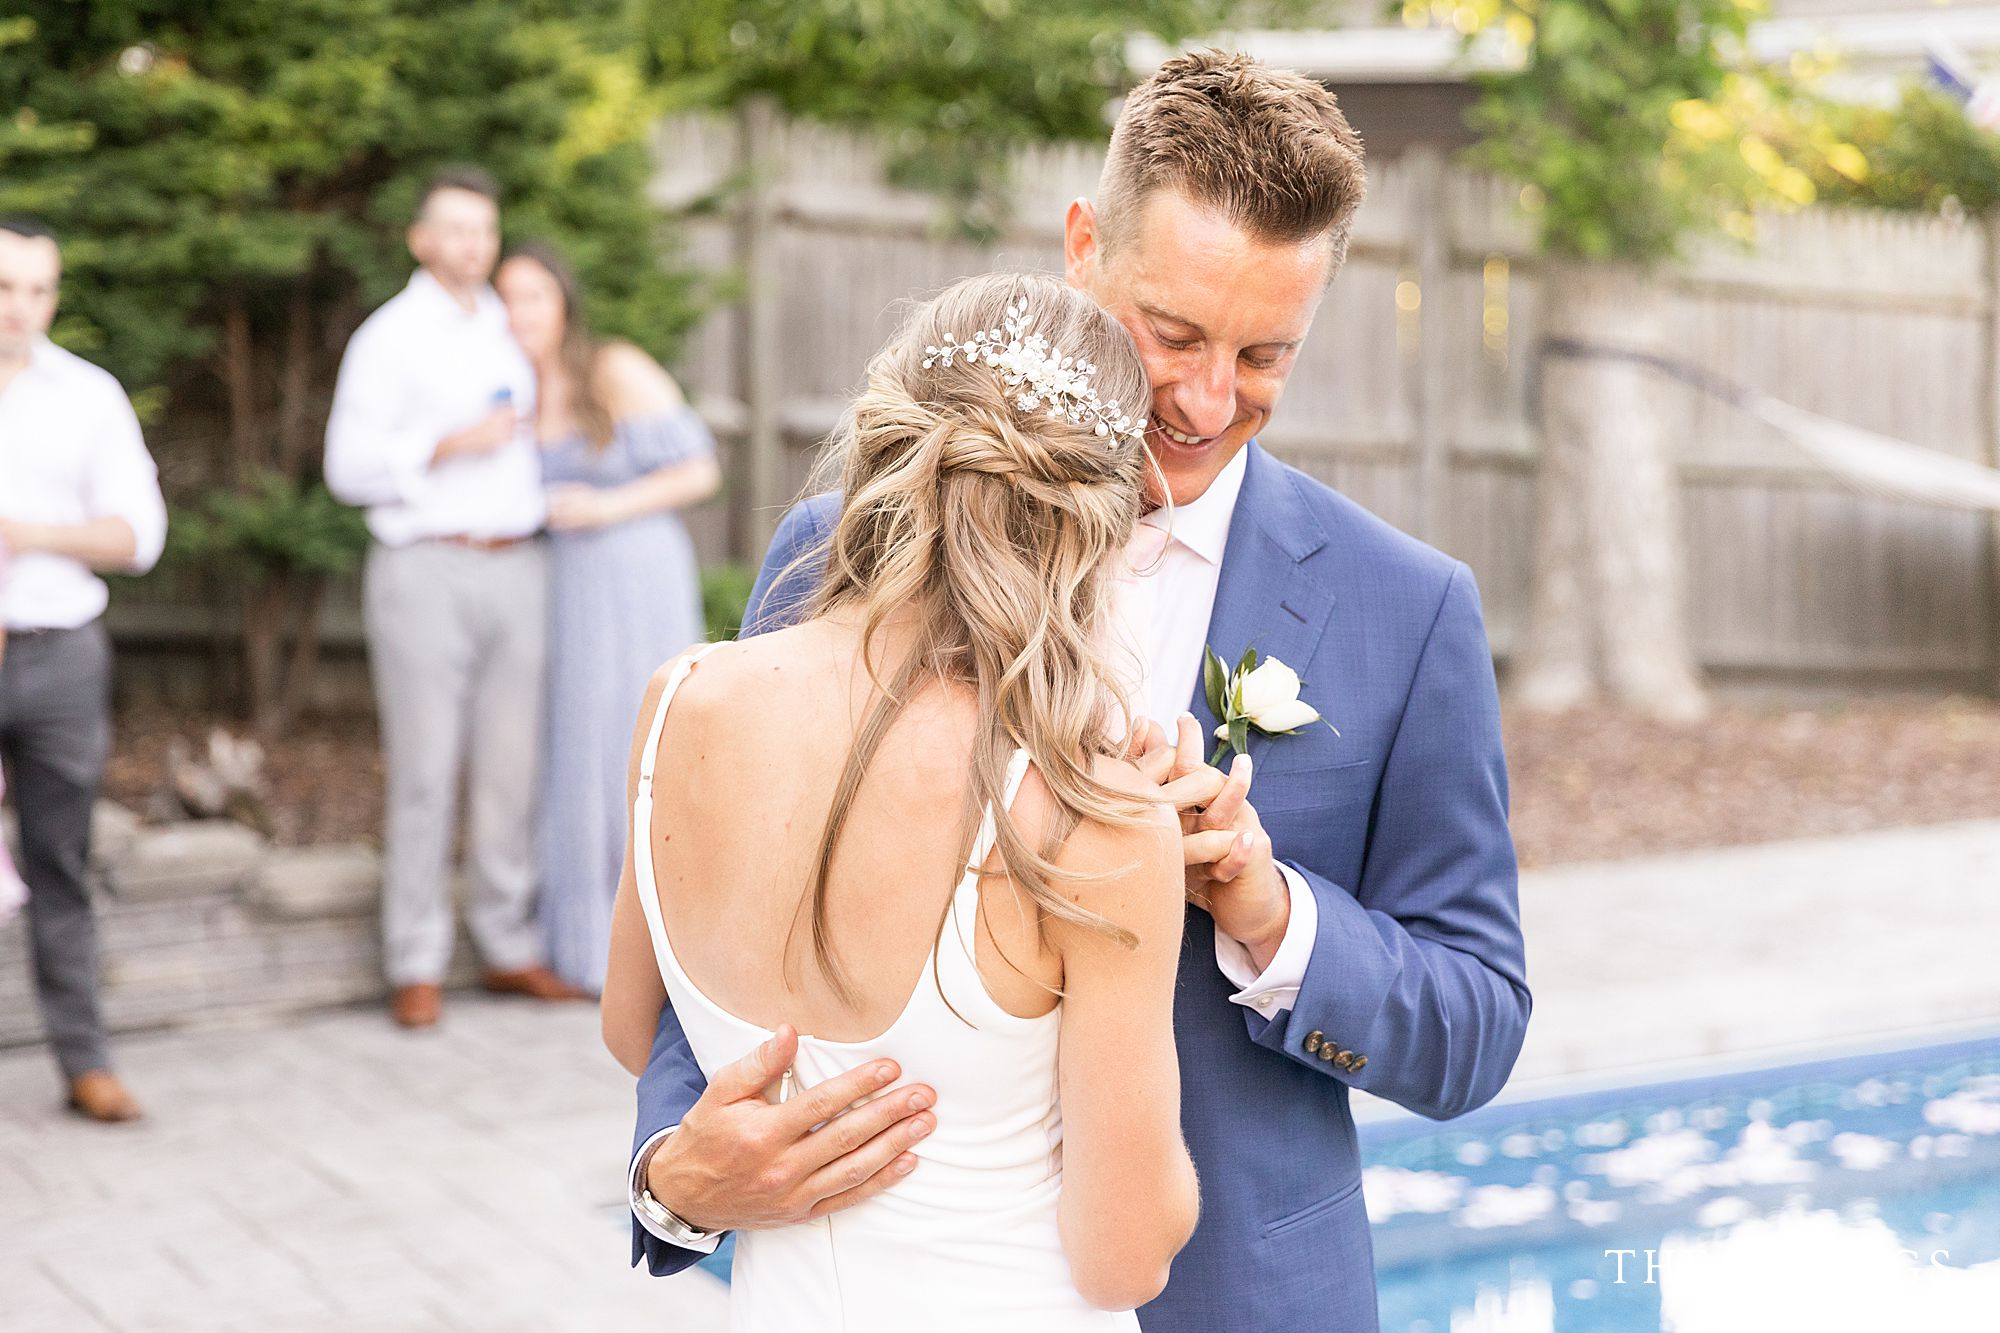 A backyard wedding in Quincy MA, after an intimate Boston Island wedding ceremony.